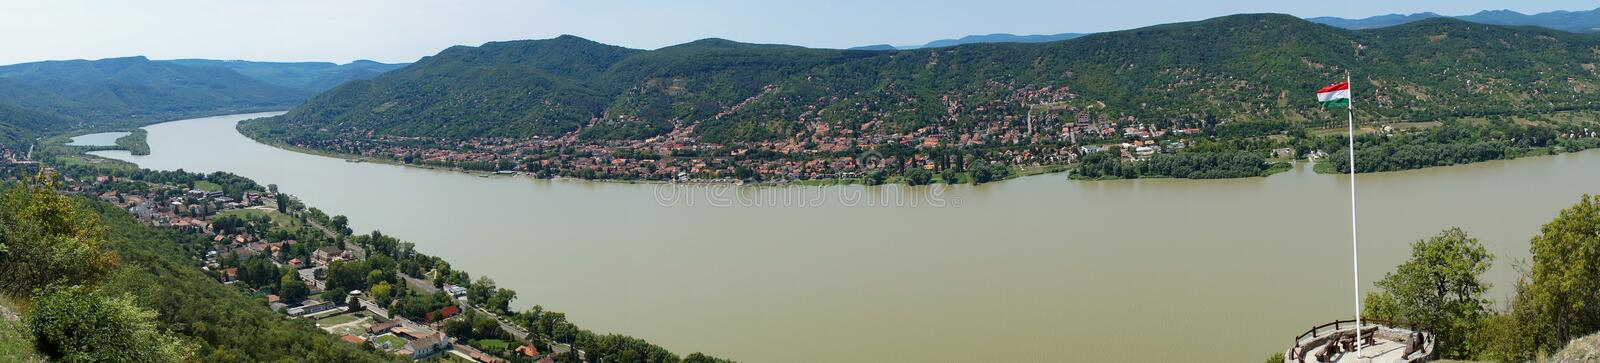 Danube bend. Landscape photo of part of the danube bend royalty free stock image